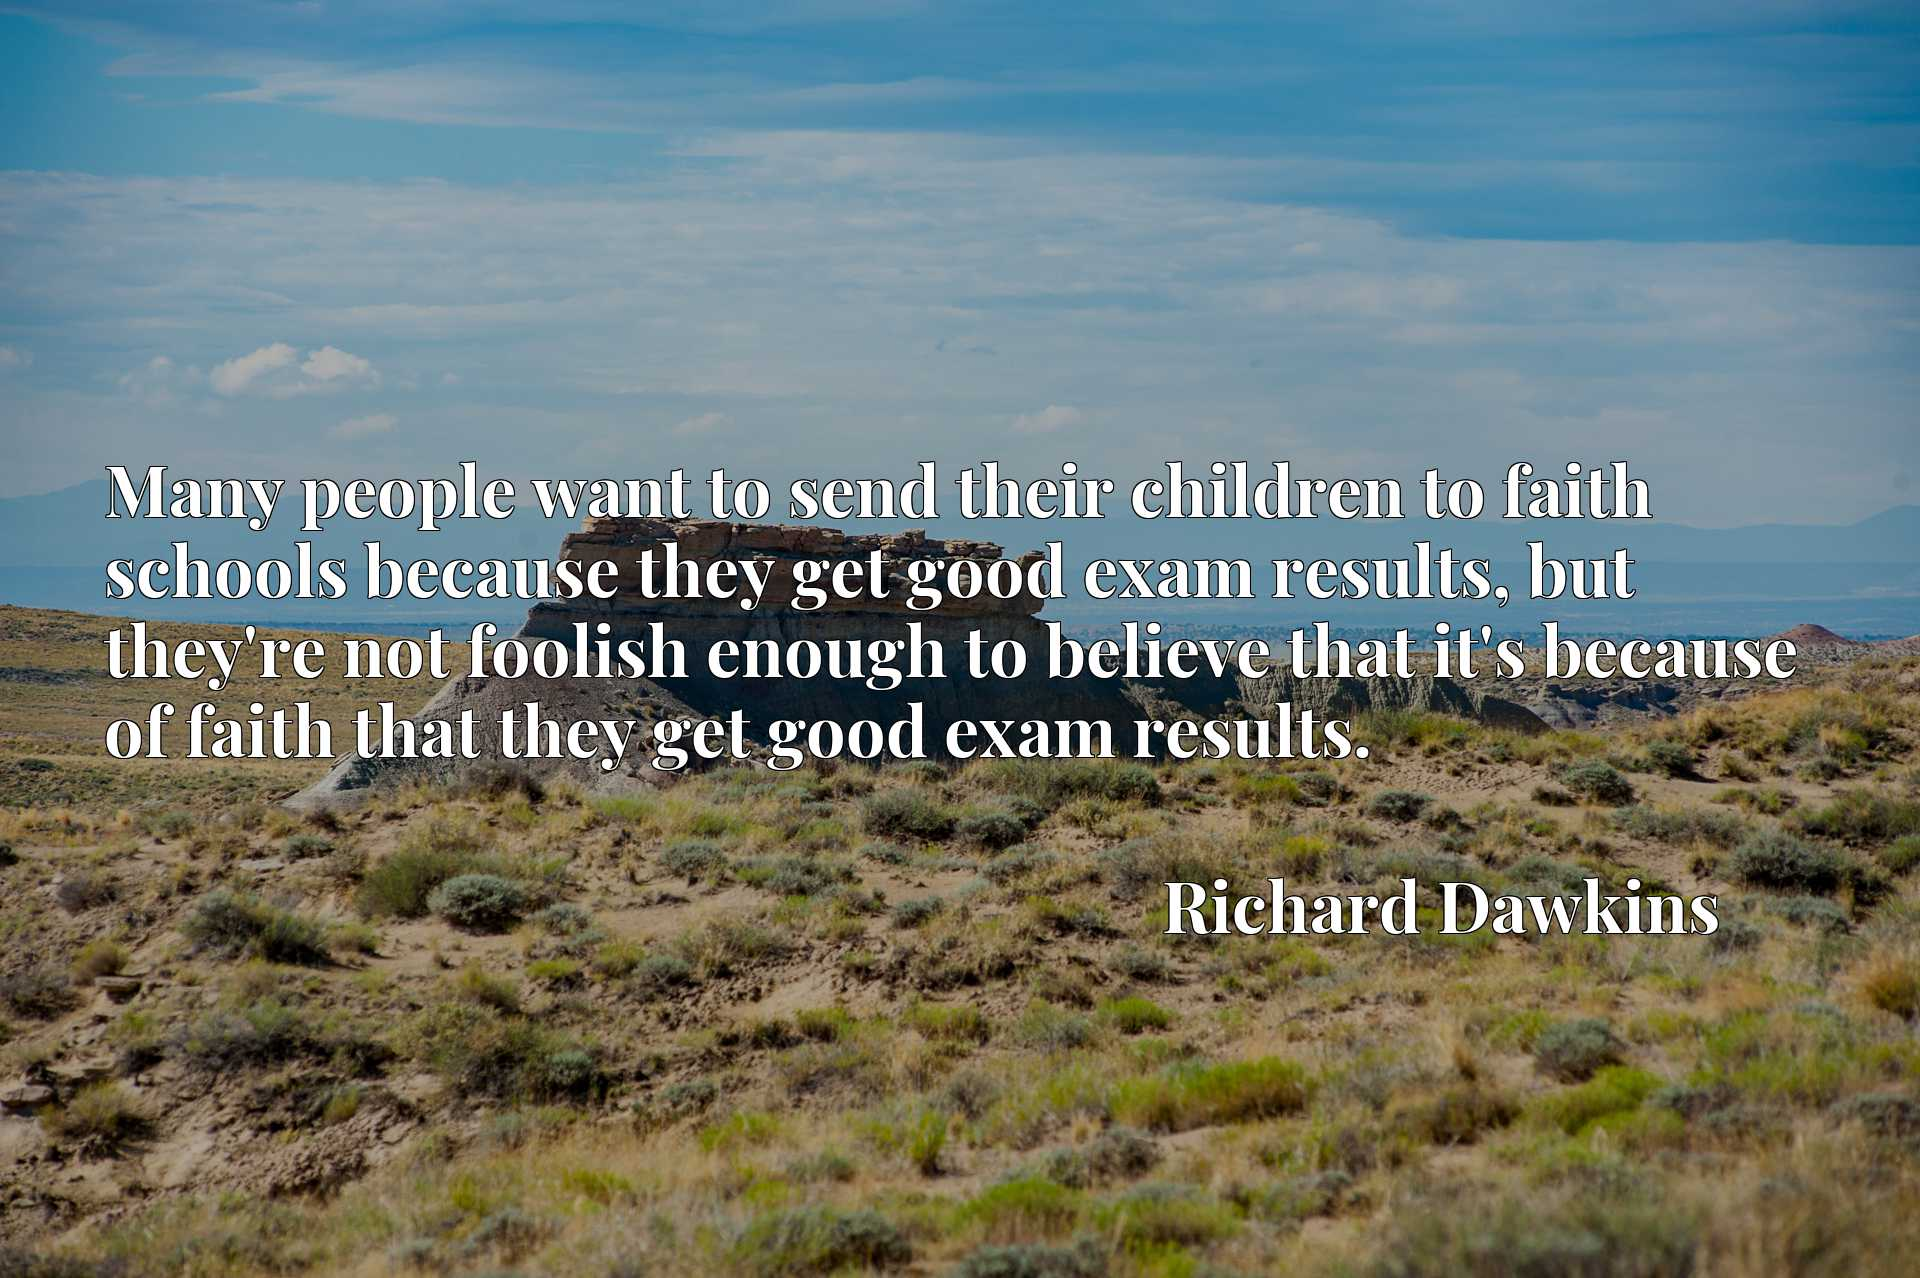 Many people want to send their children to faith schools because they get good exam results, but they're not foolish enough to believe that it's because of faith that they get good exam results.